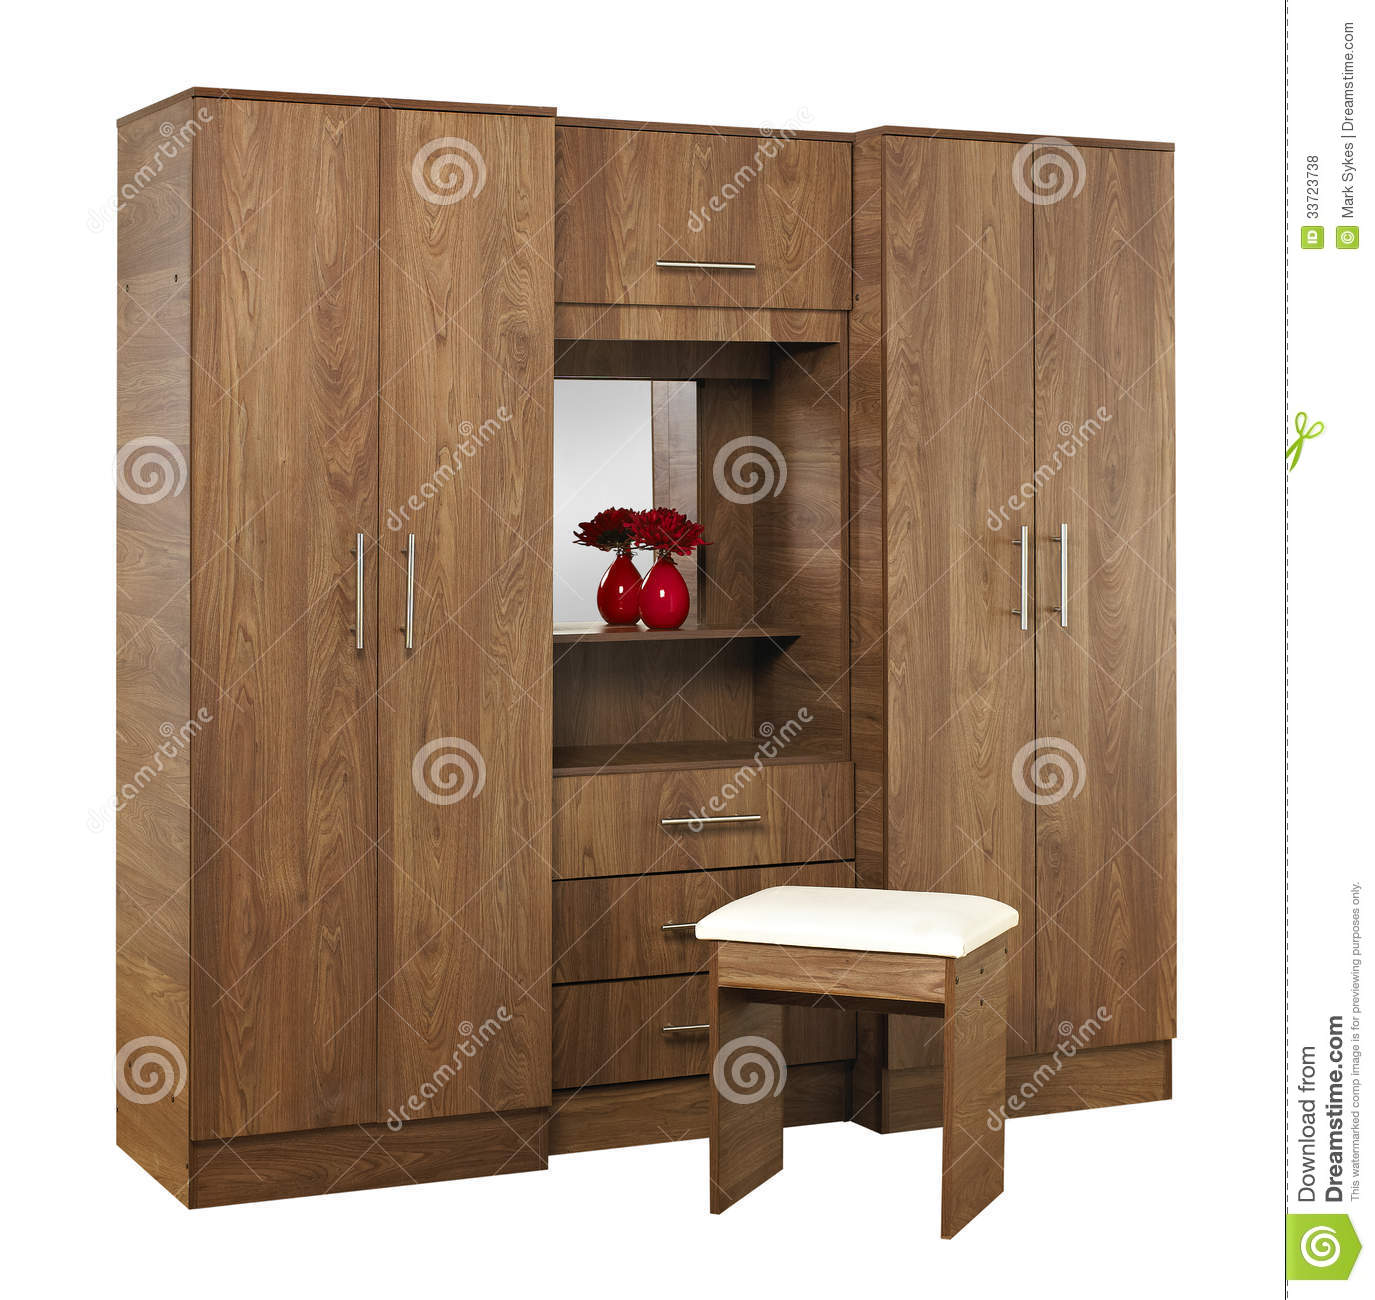 Amazing photo of Brown wood bedroom wardrobe with mirror isolated on white background. with #84A625 color and 1375x1300 pixels